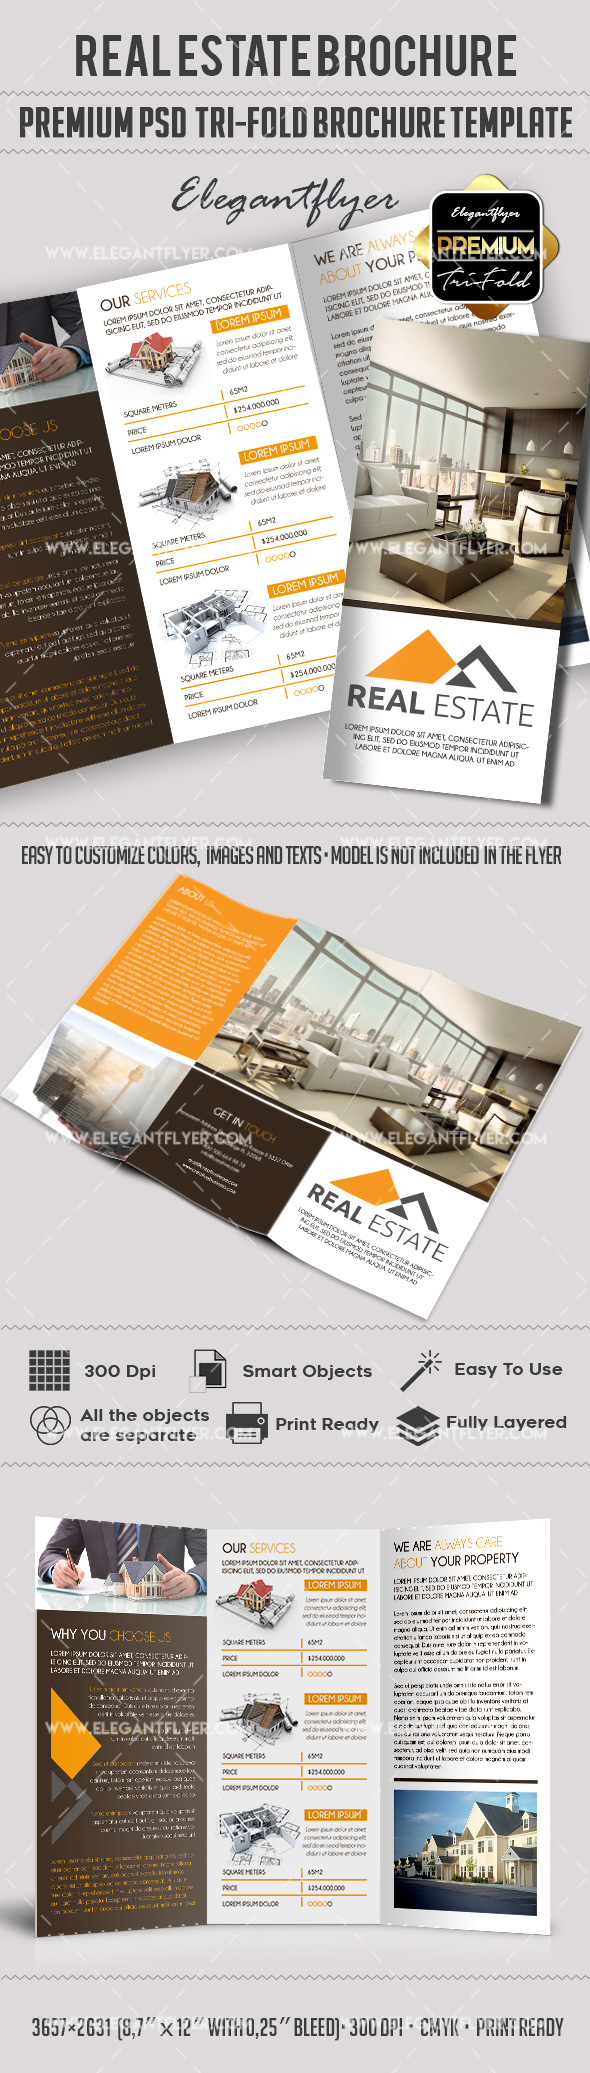 2 fold brochure template psd - psd brochure for commercial real estate by elegantflyer